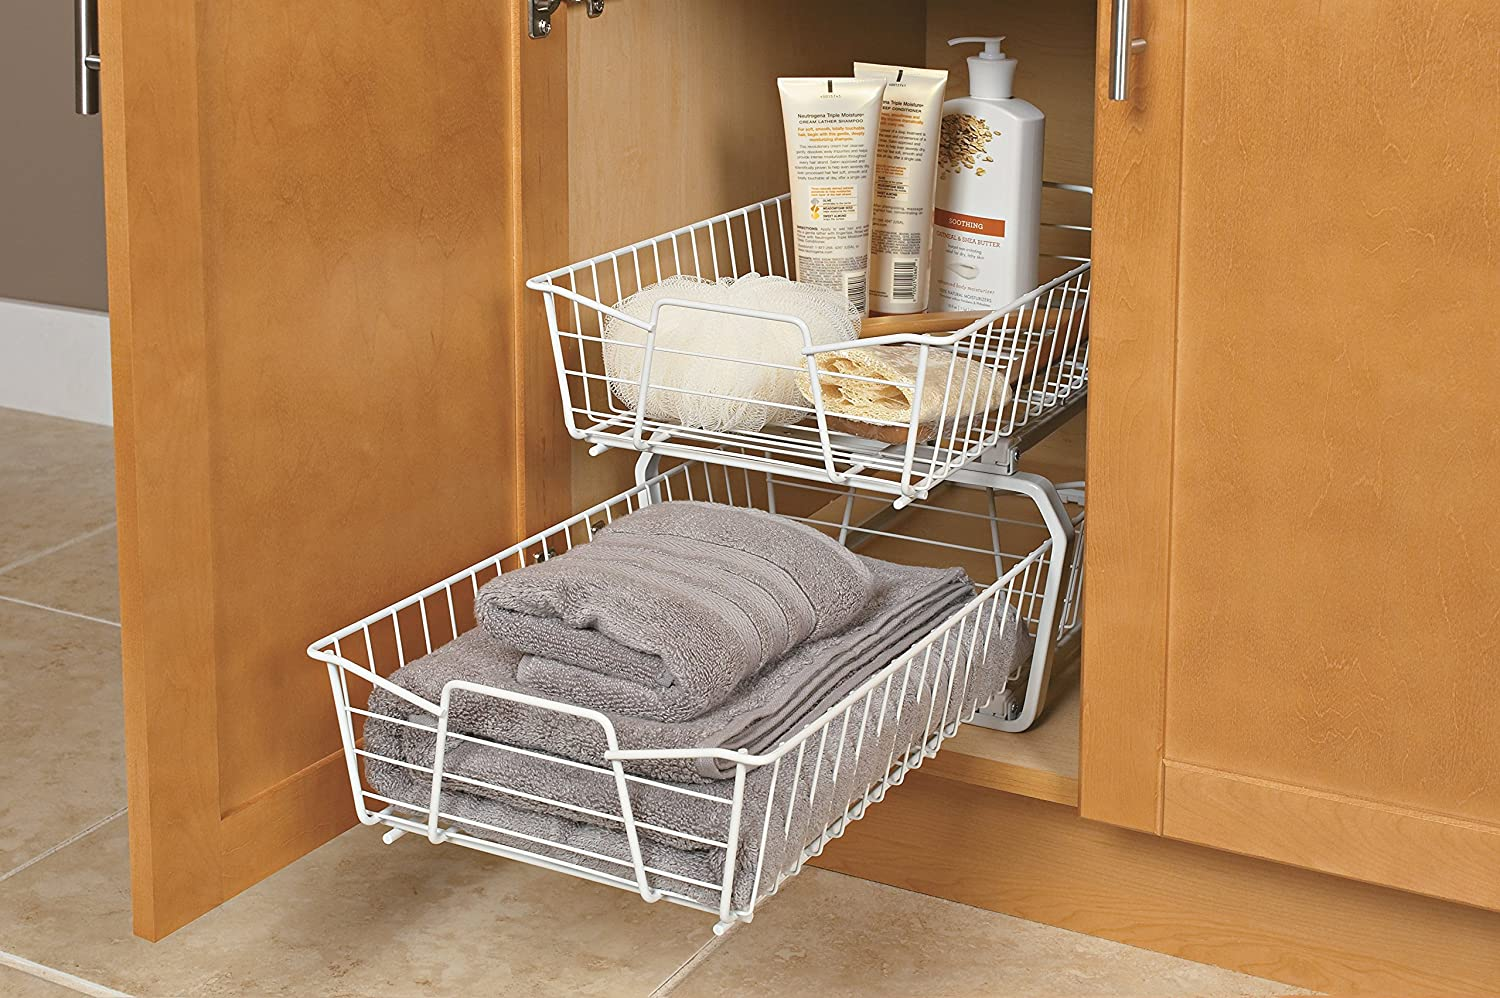 Lynk roll out under sink cabinet organizer pull out two tier sliding - Amazon Com Closetmaid 3608 2 Tier 11 Inch Kitchen Cabinet Organizer White Home Kitchen